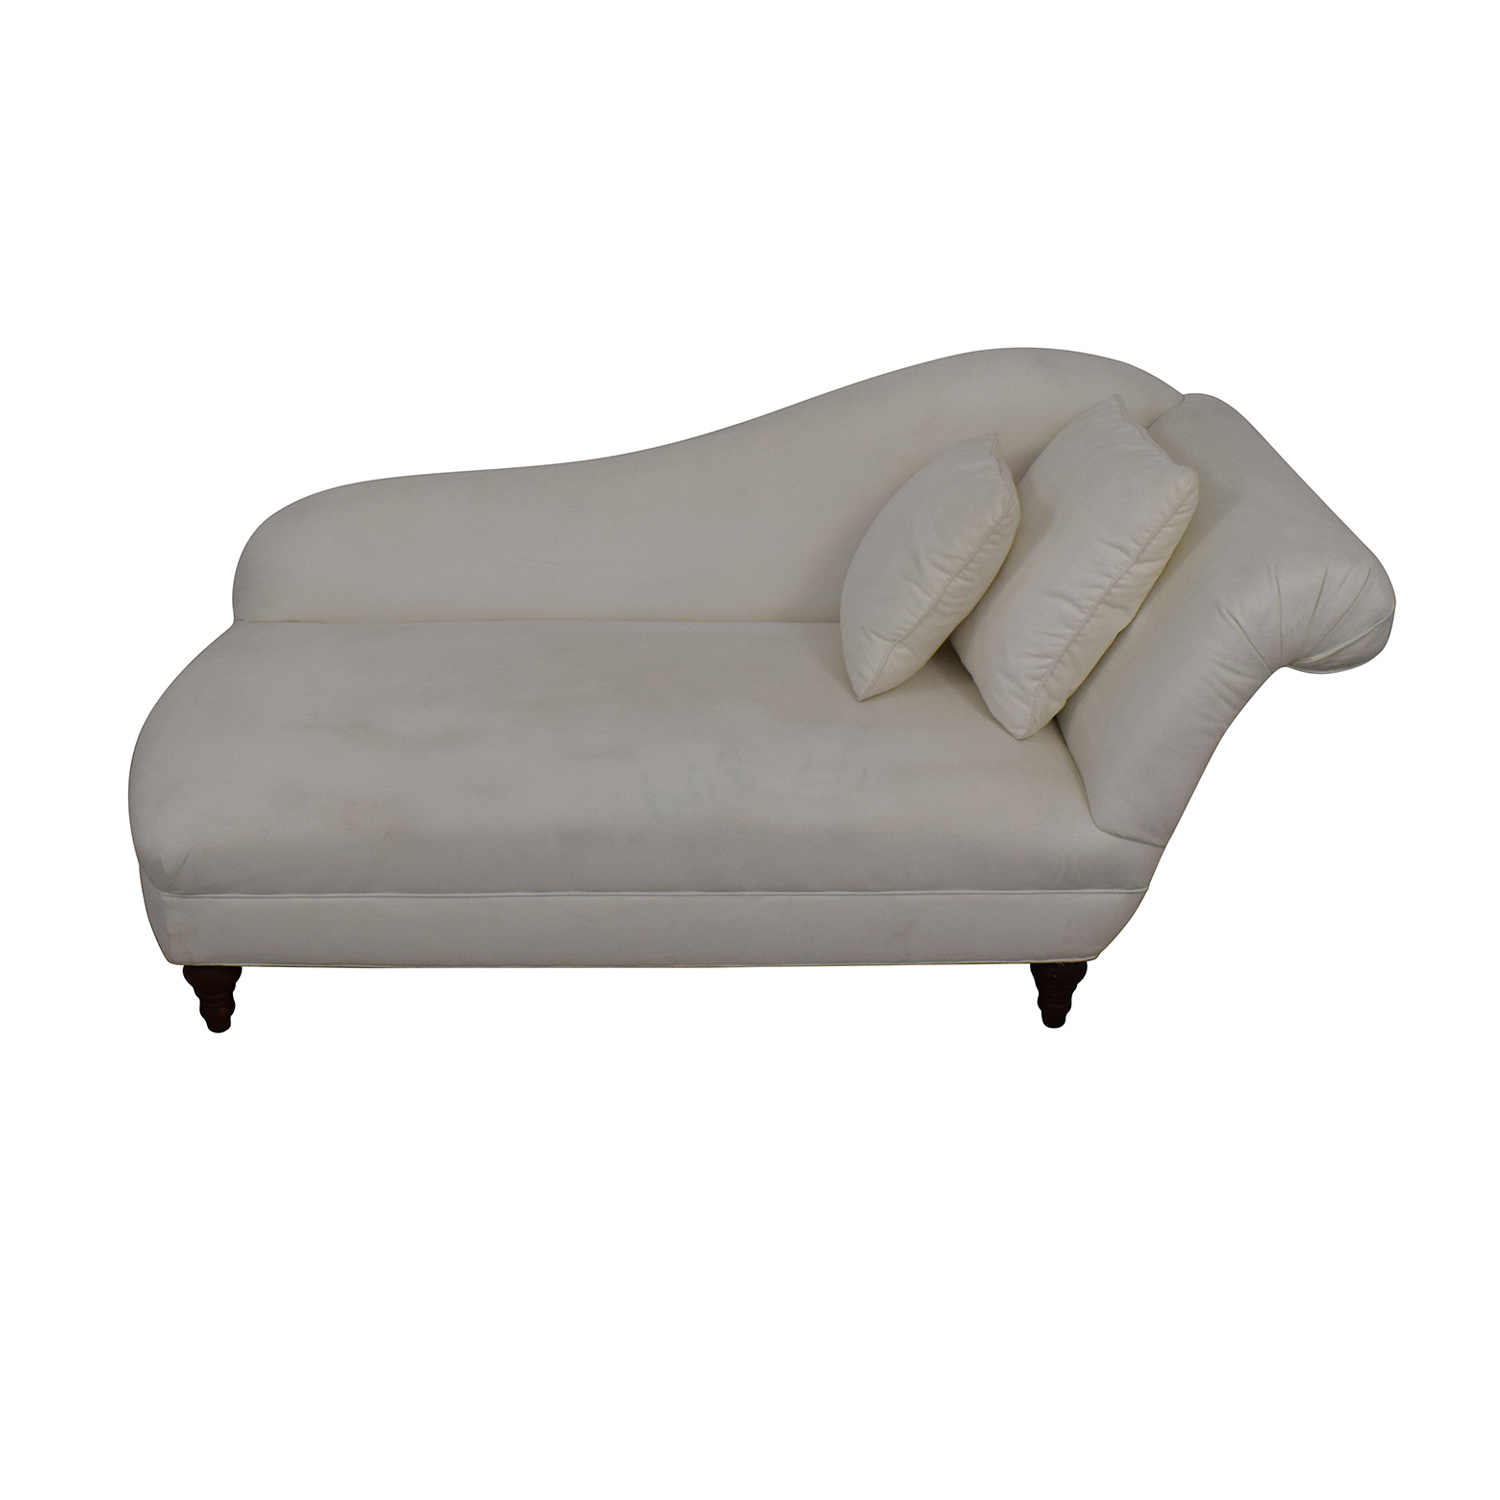 Fairfield Chair Company Fairfield Chair Company Living Room White Chaise Sofas